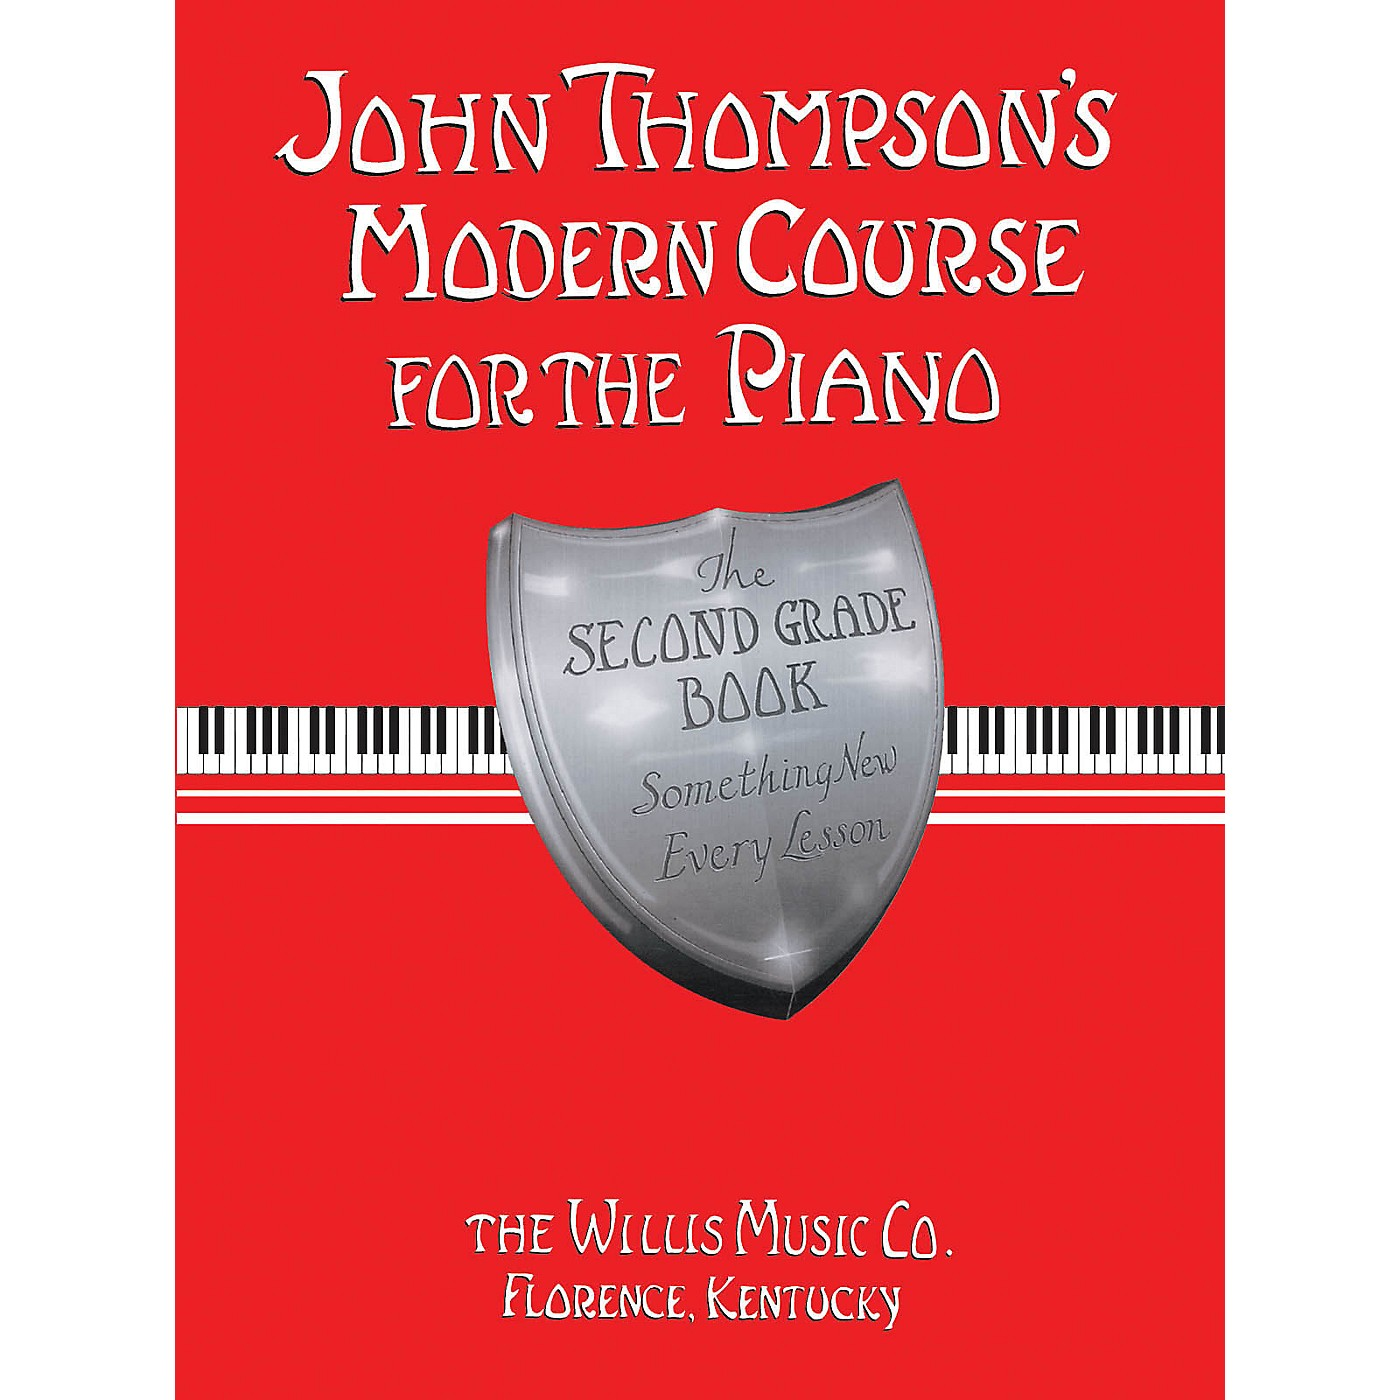 Hal Leonard Modern Course For The Piano Second Grade Book thumbnail